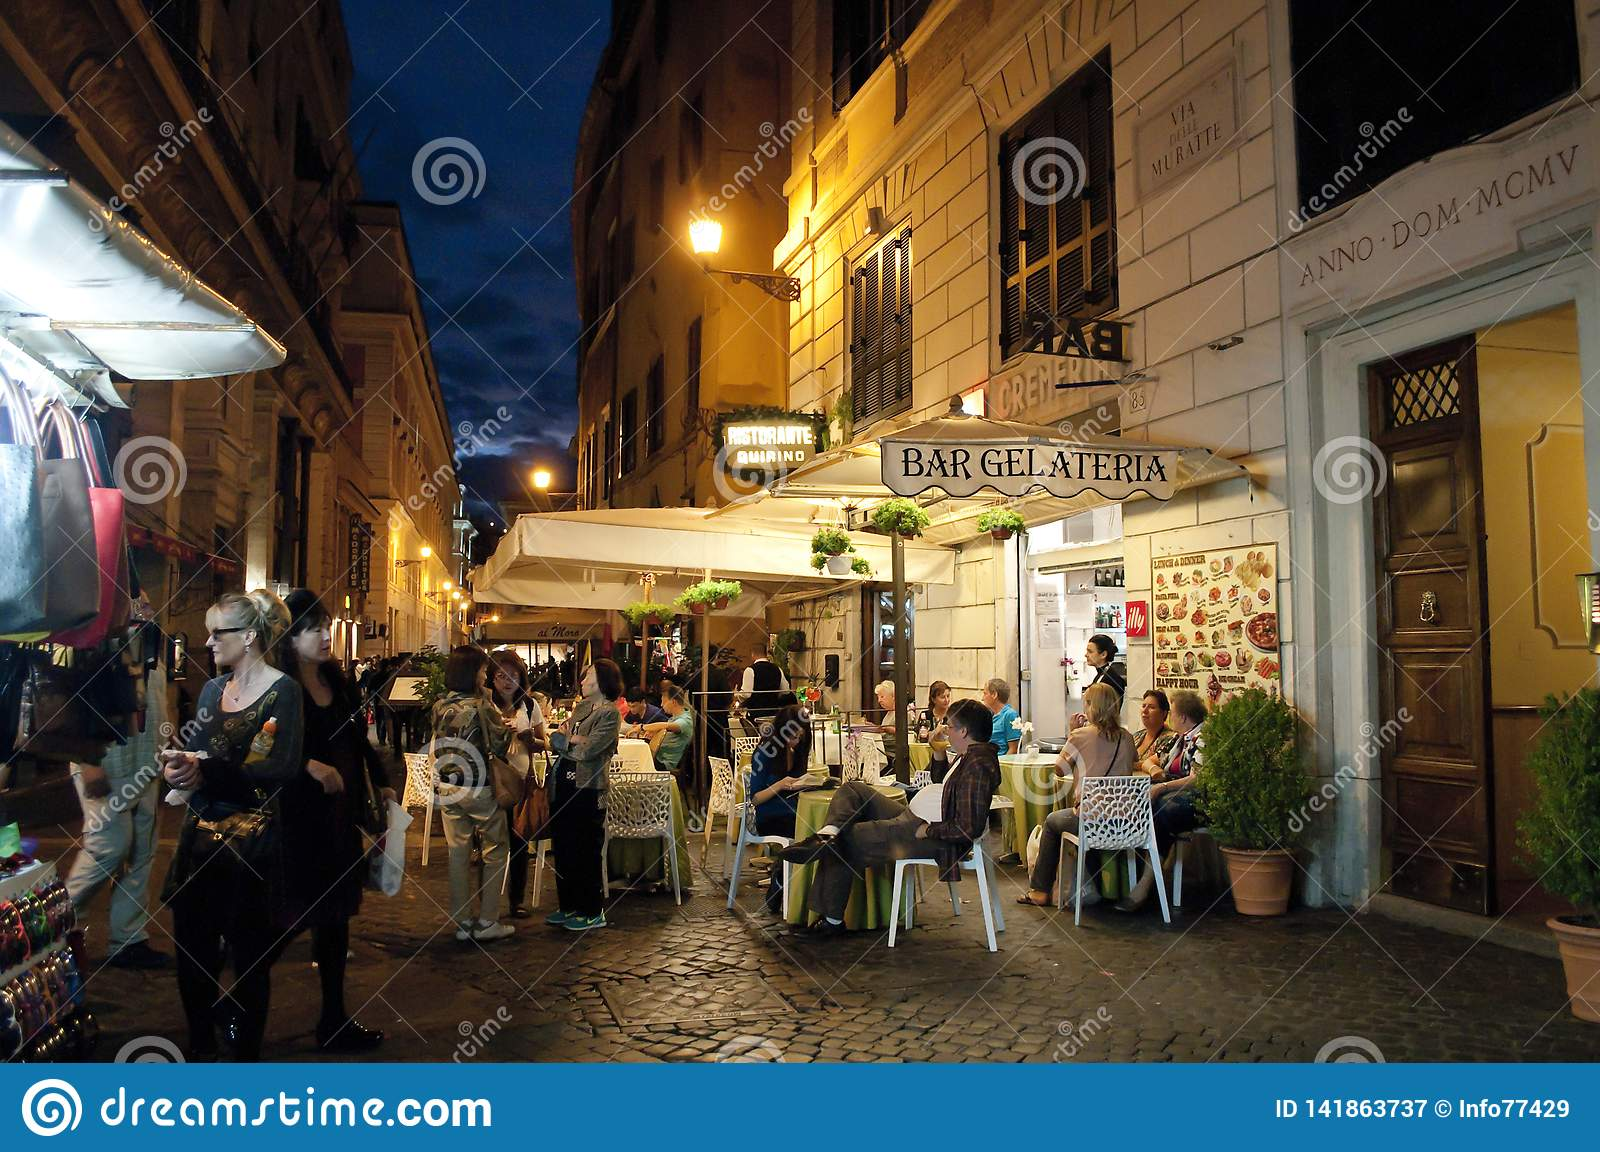 Street restaurants in Trevi district at night, Rome, Italy